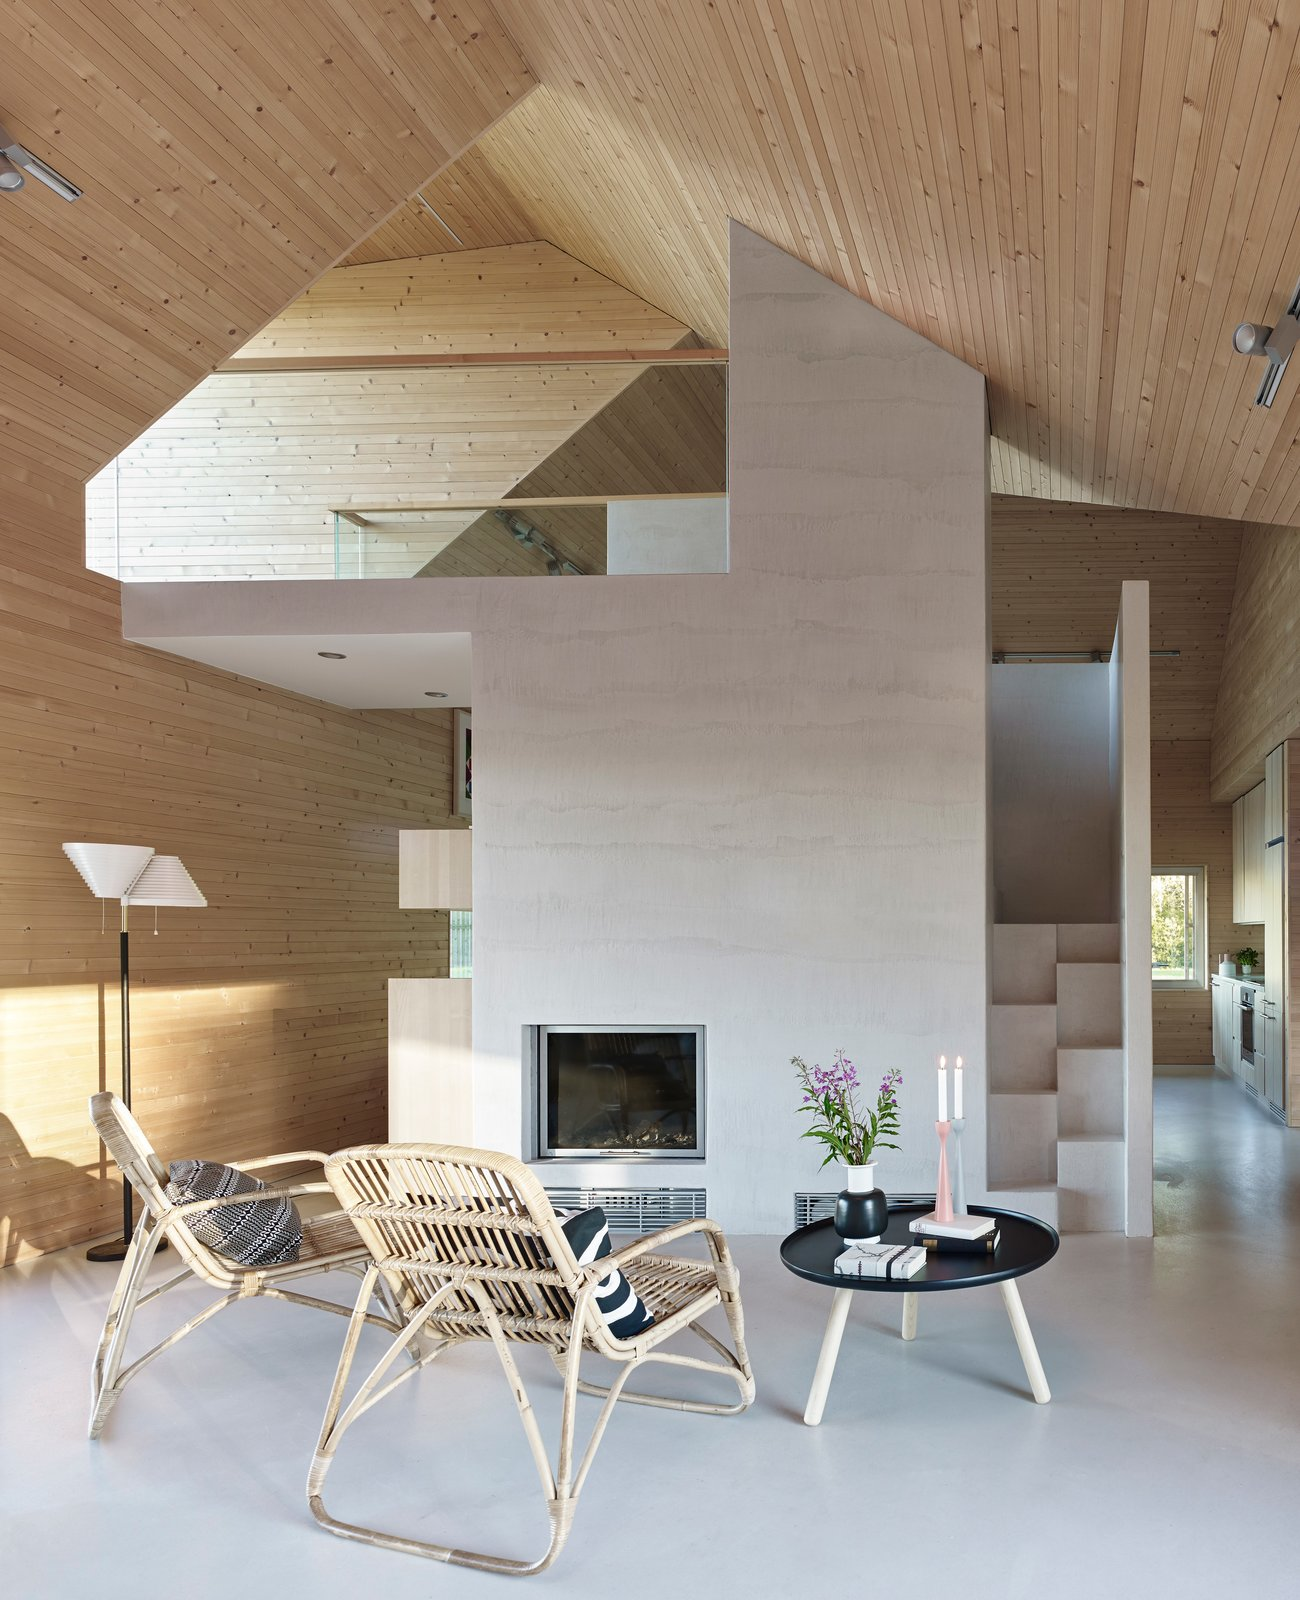 The living room includes a table from Normann Copenhagen, chairs by Annansilmät-Aitta, and Alvar Aalto's A810 lamp for Artek, all on a poured concrete floor. This Battery-Powered House Never Runs Out of Juice - Photo 5 of 8